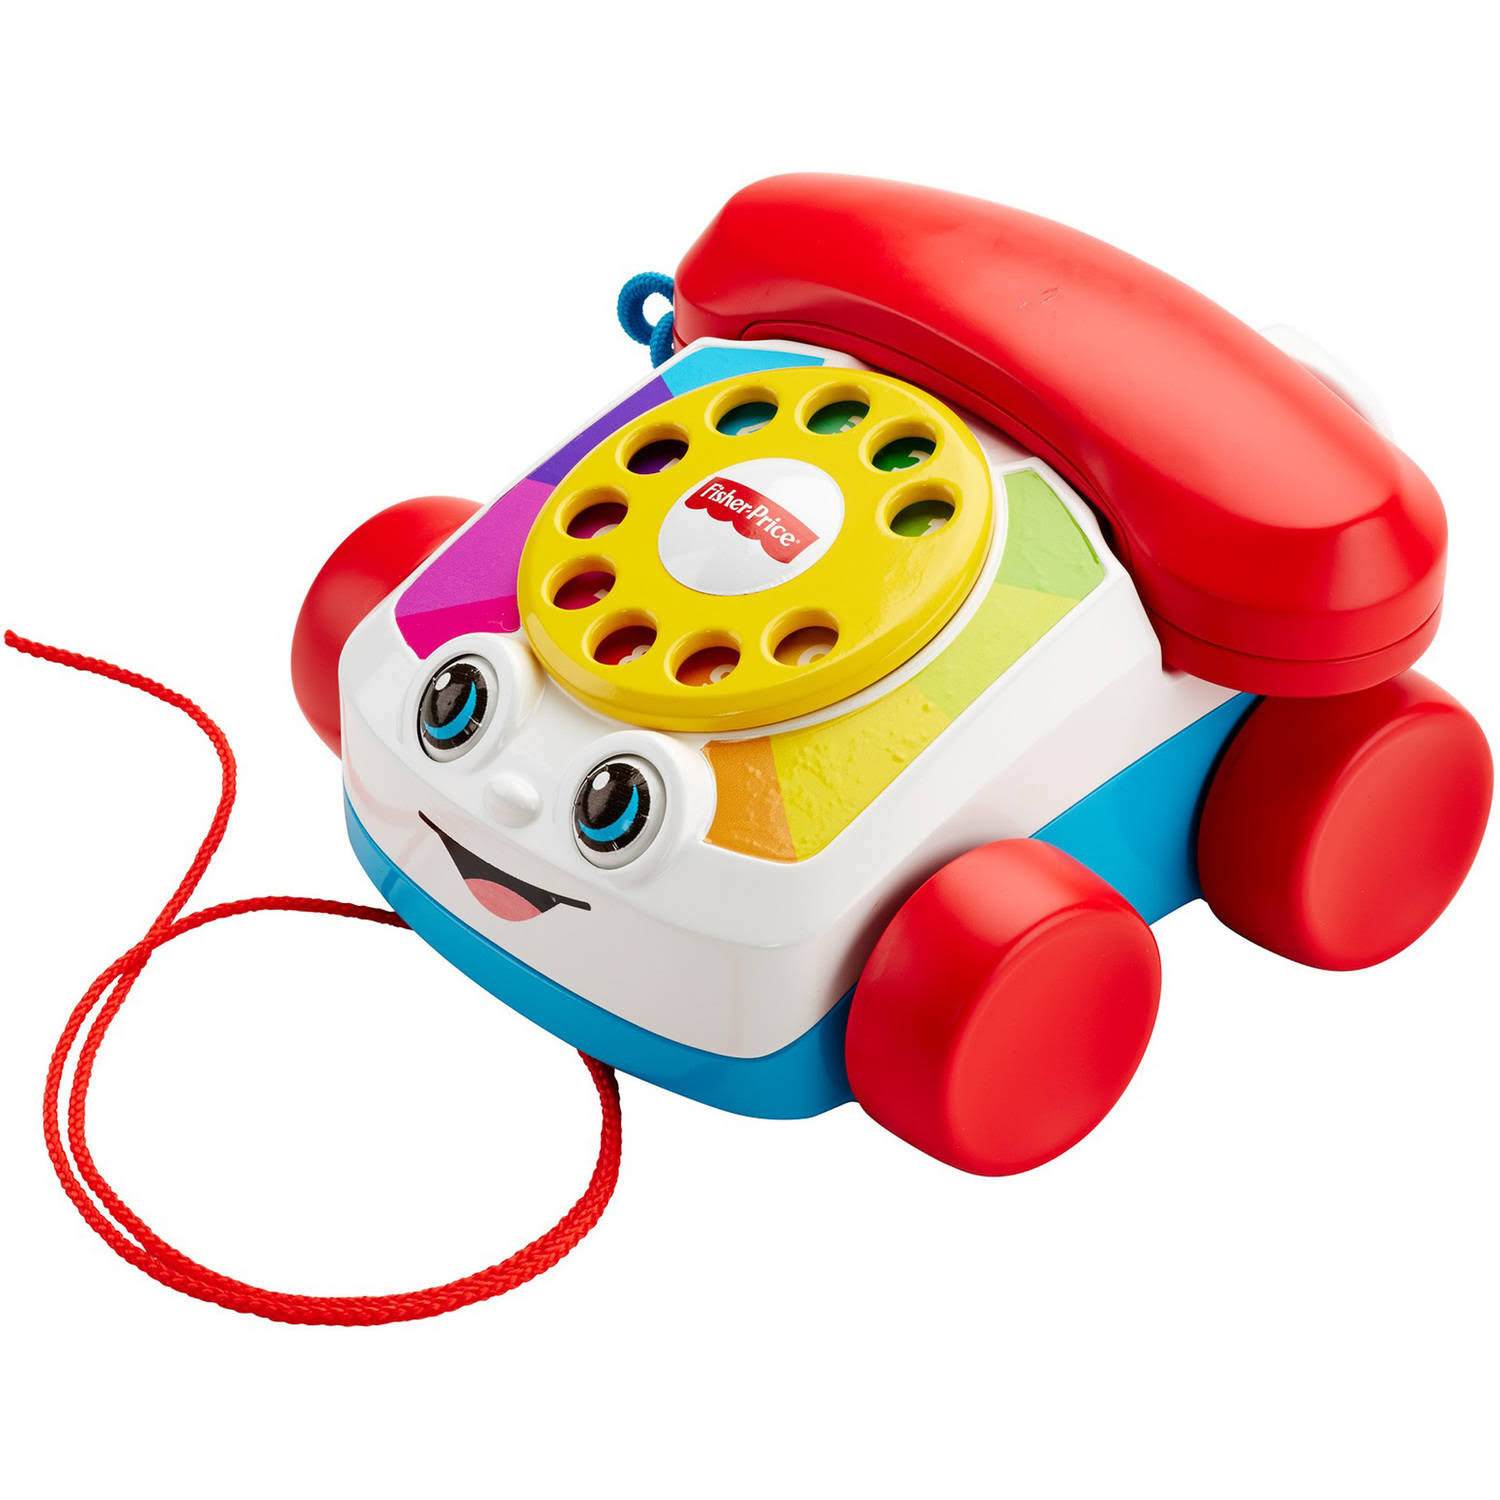 Fisher-Price Chatter Telephone Toy